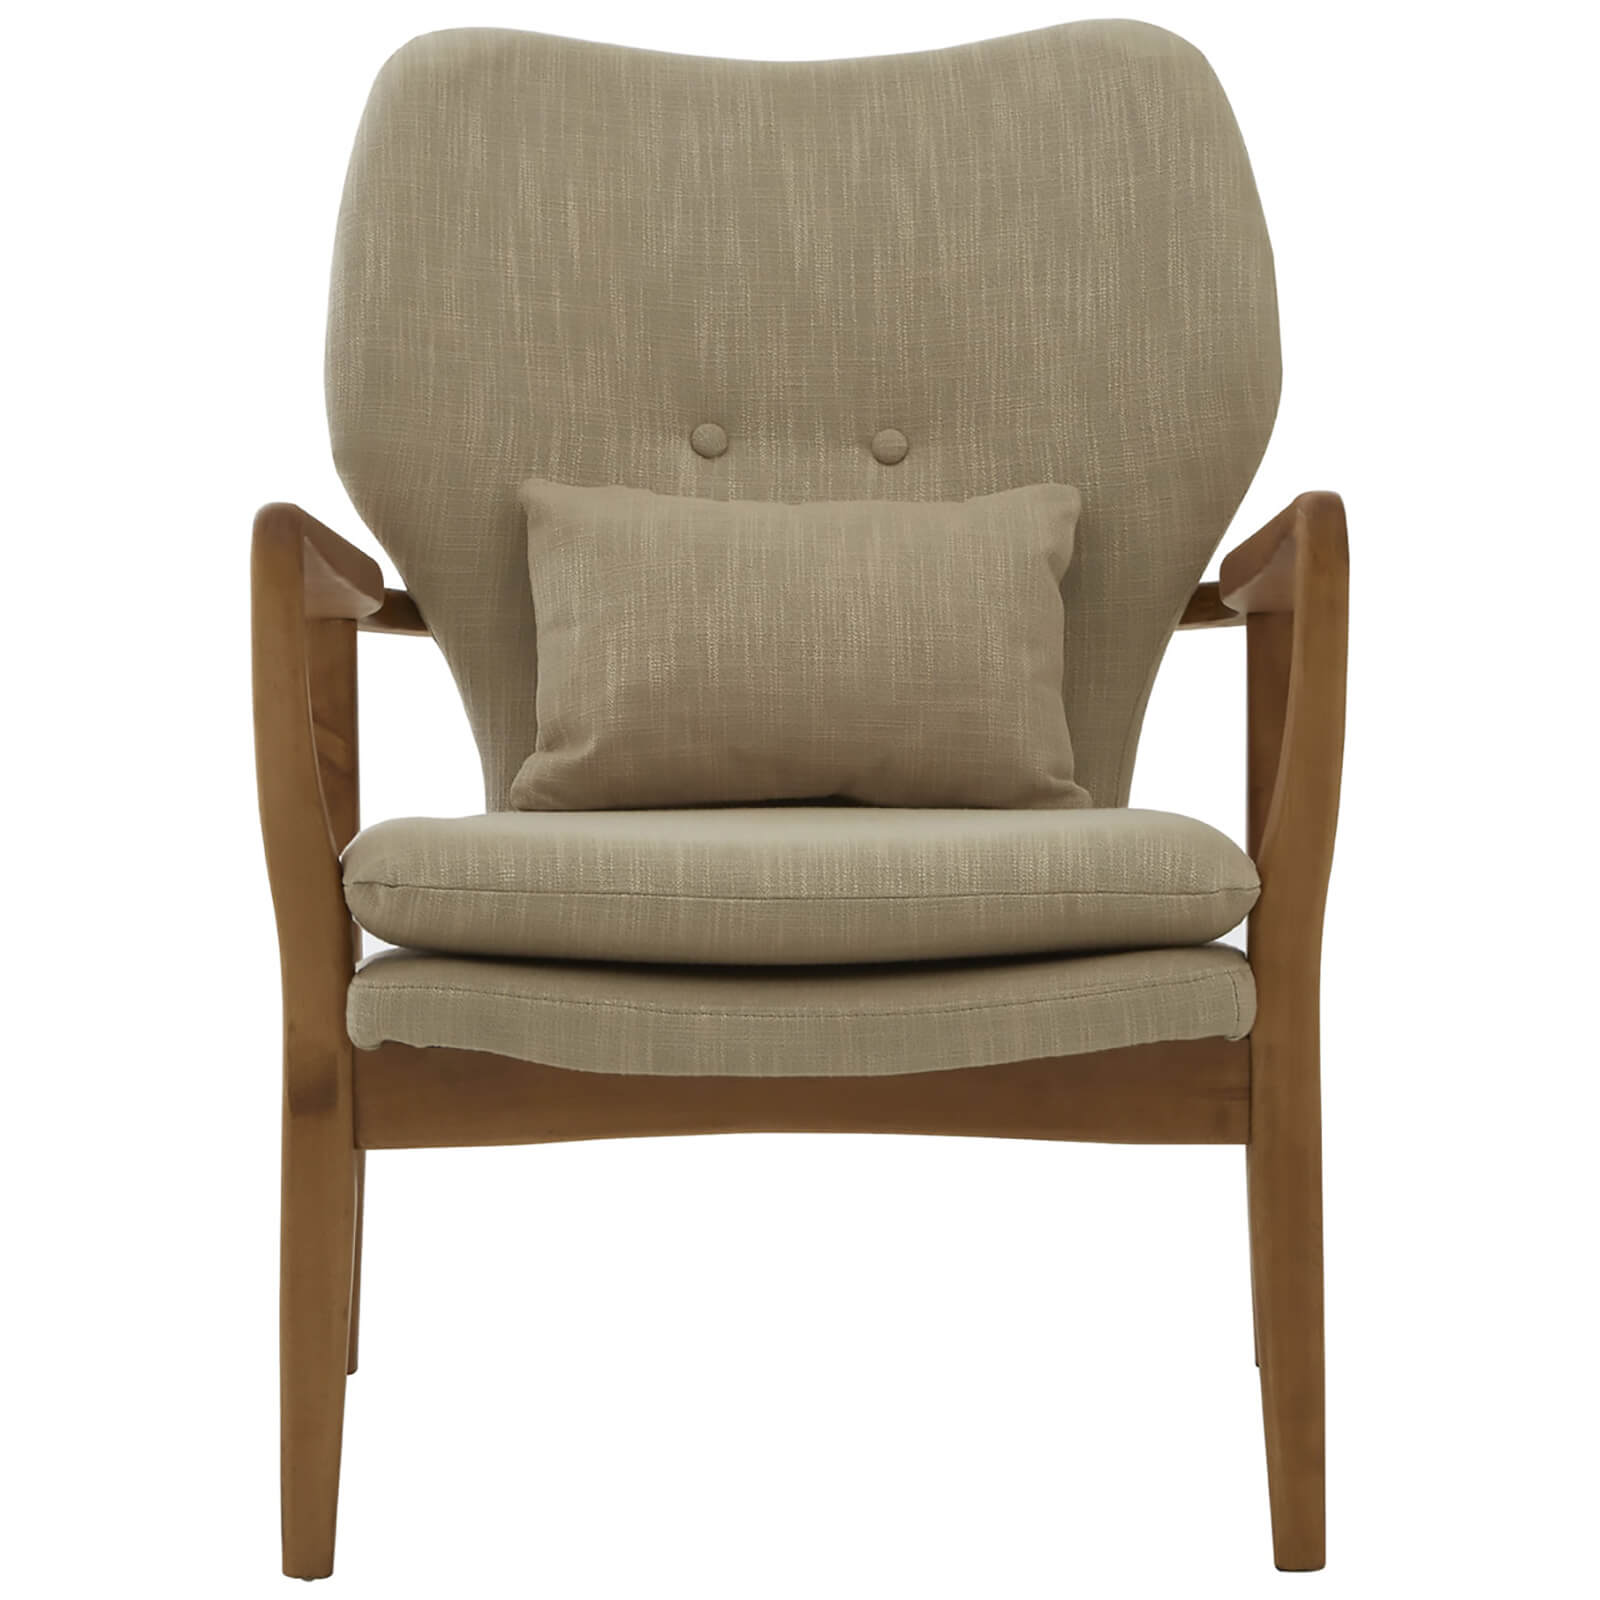 Fifty Five South Stockholm Chair - Birch/Beige